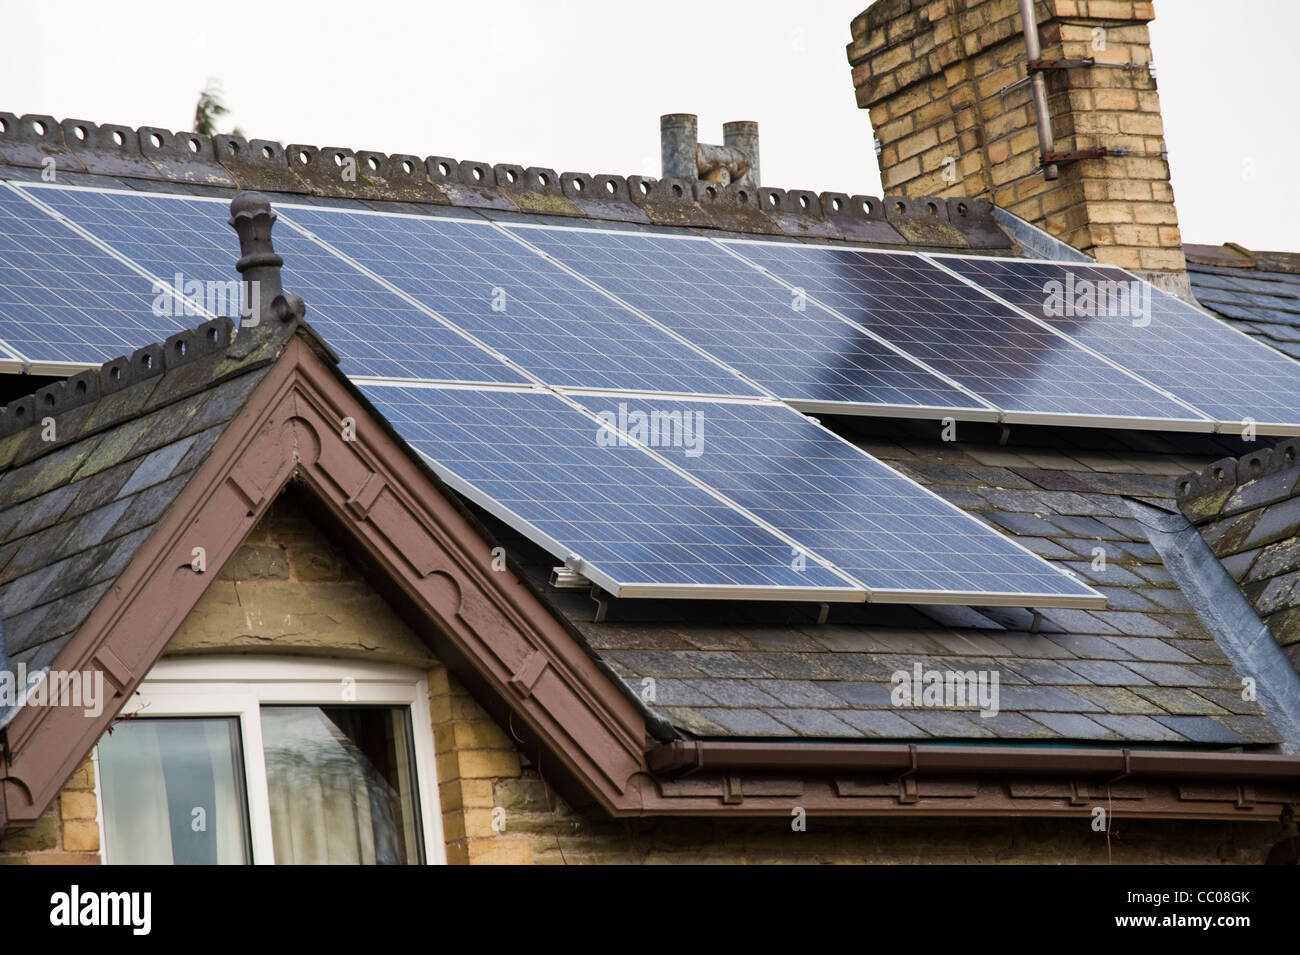 Solar panels fitted to roof of rural detached period house in Clyro Powys Wales UK - Stock Image